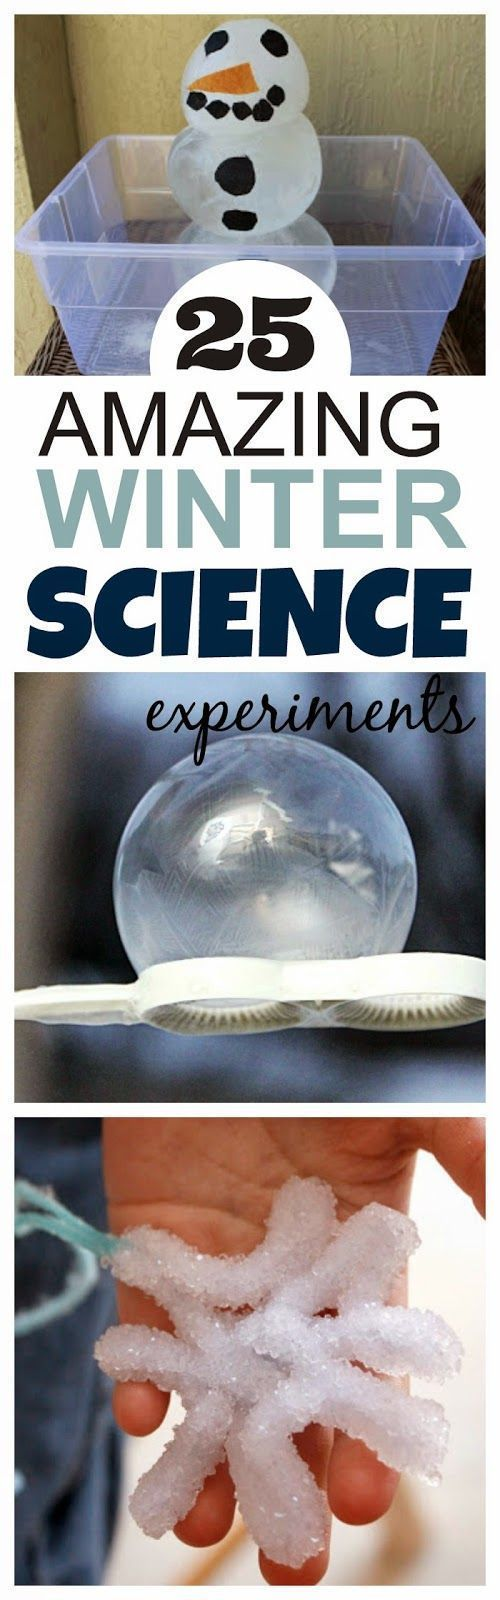 Fall in love with Science this Winter with these AMAZING experiments for kids. So many fun ideas I can't wait to try them all!